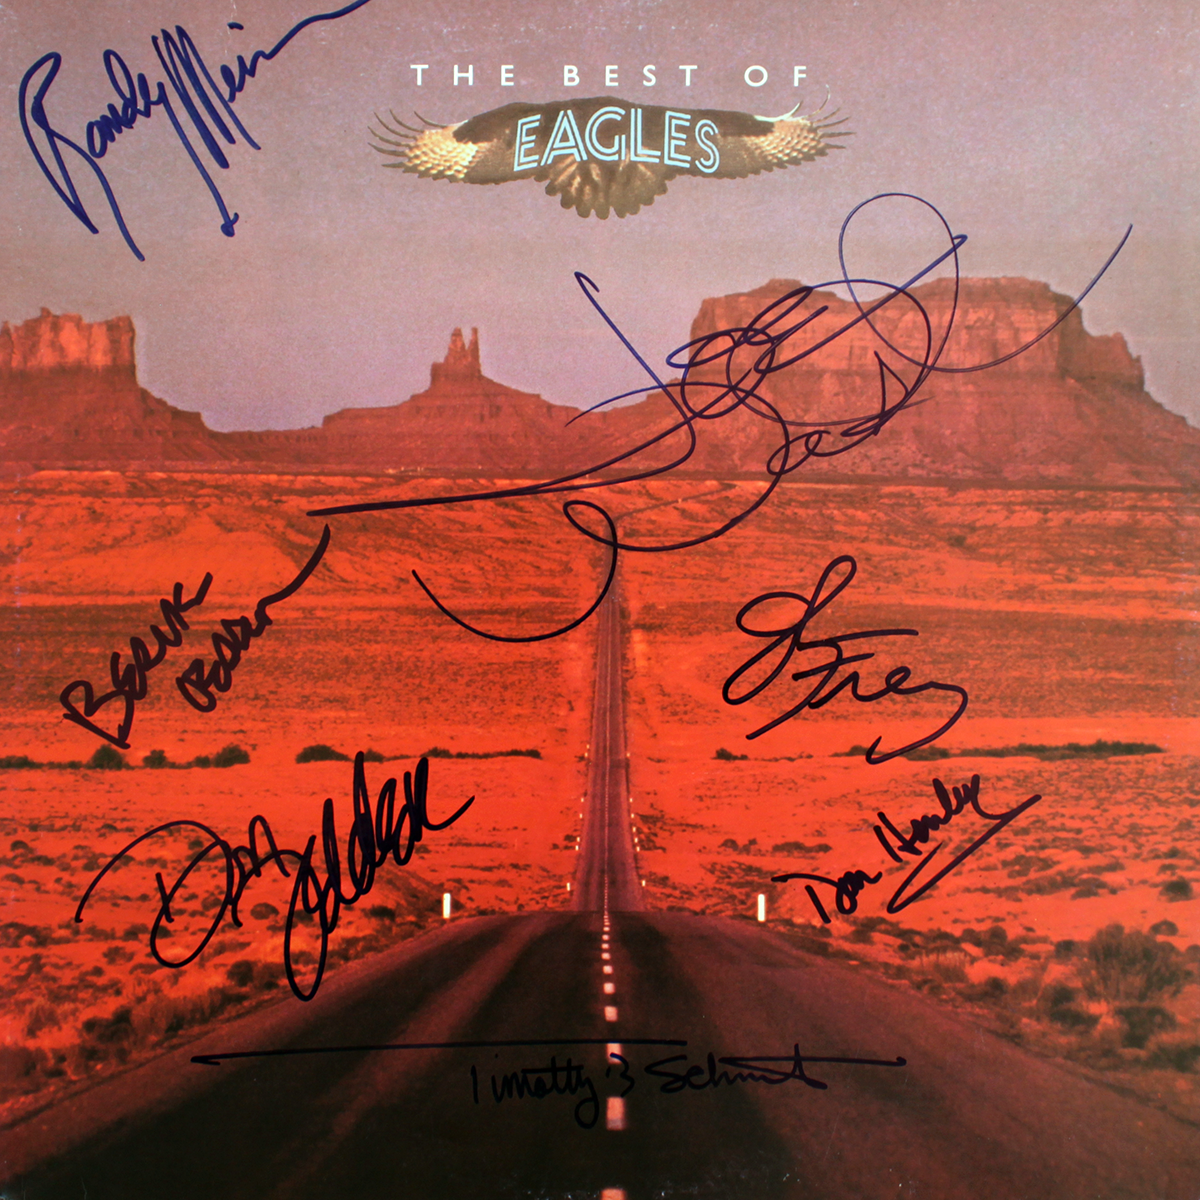 Eagles LP - Best of Eagles (European)